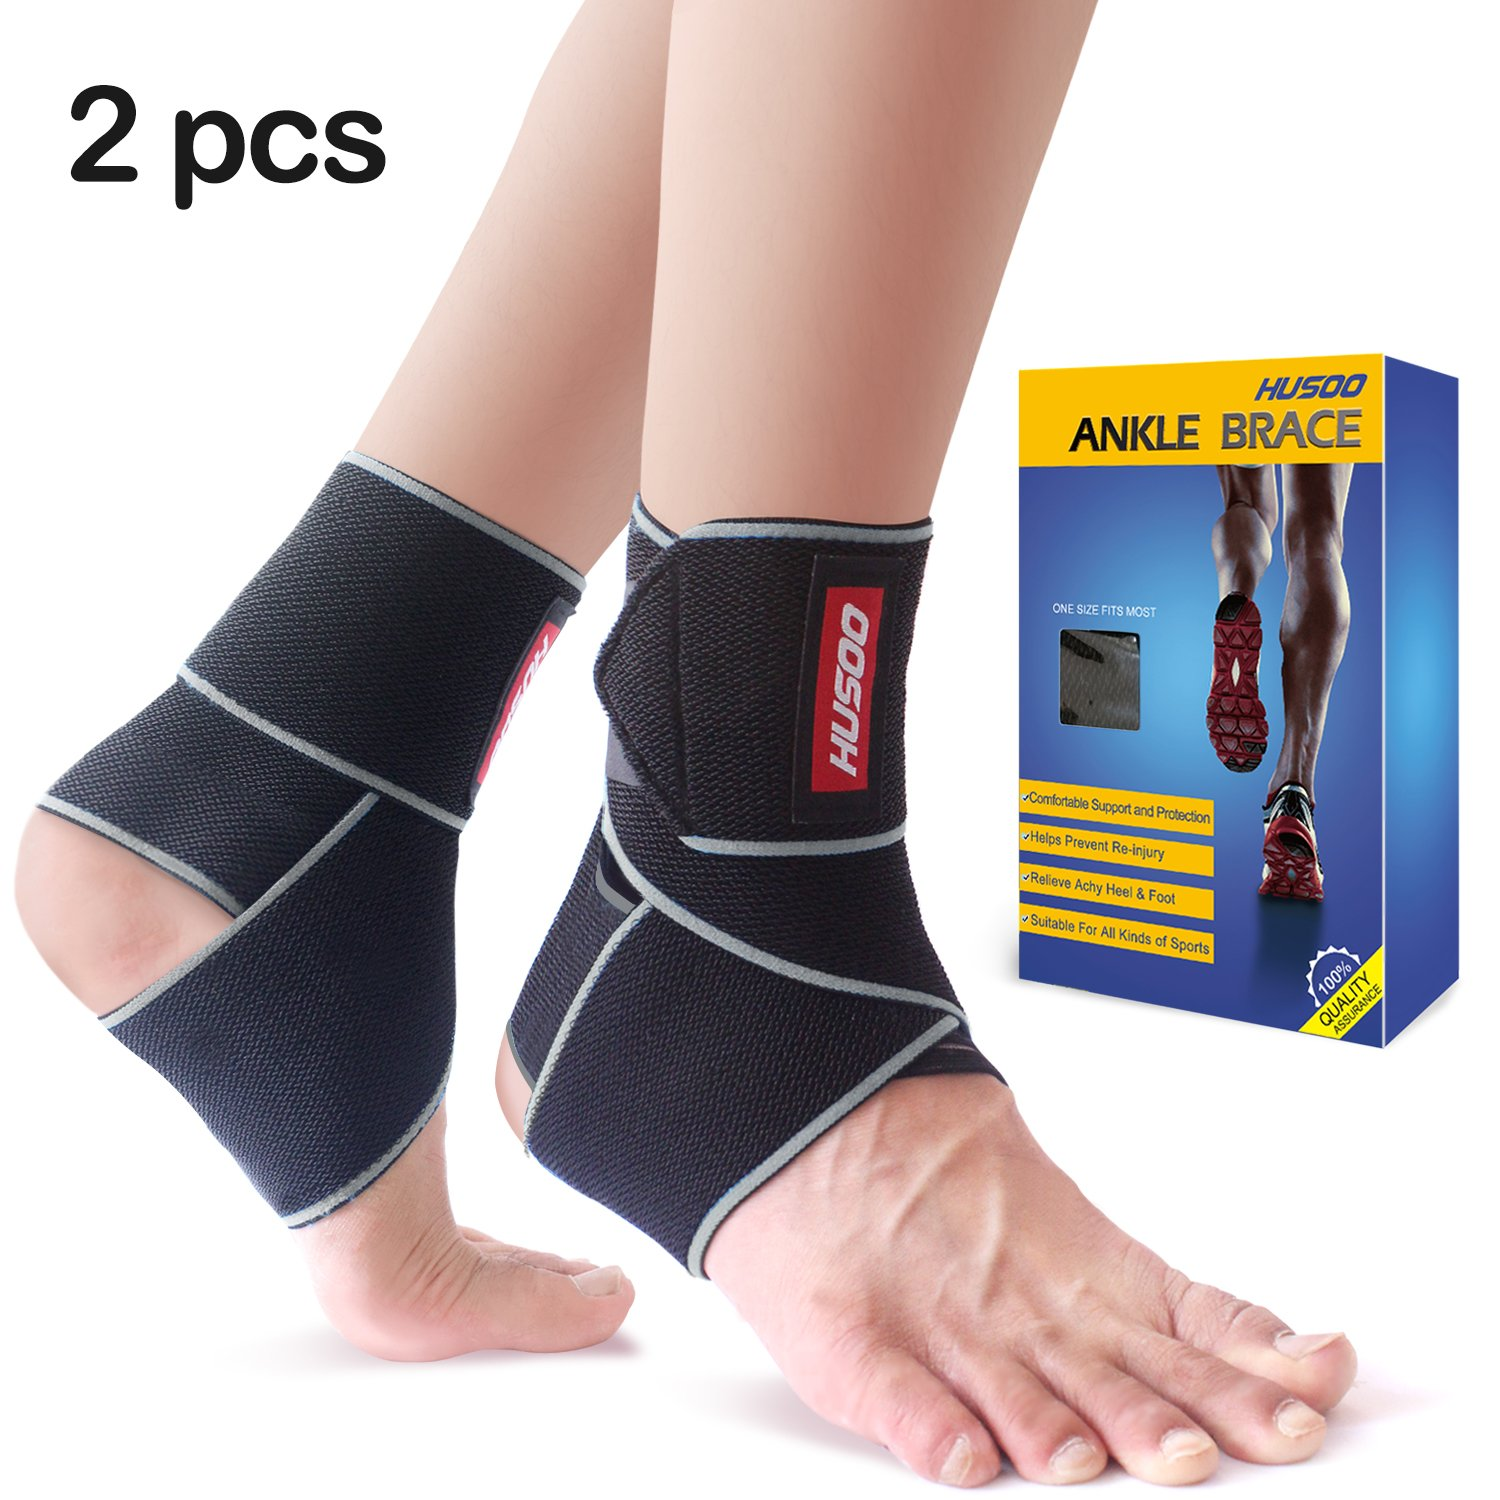 754fe24e69 Ankle Brace, Husoo Breathable Ankle Support with Anti-Bacterial Fabric, Compression  Ankle Wrap for Sports Protect, Ankle Sprain, Plantar Fasciitis, ...